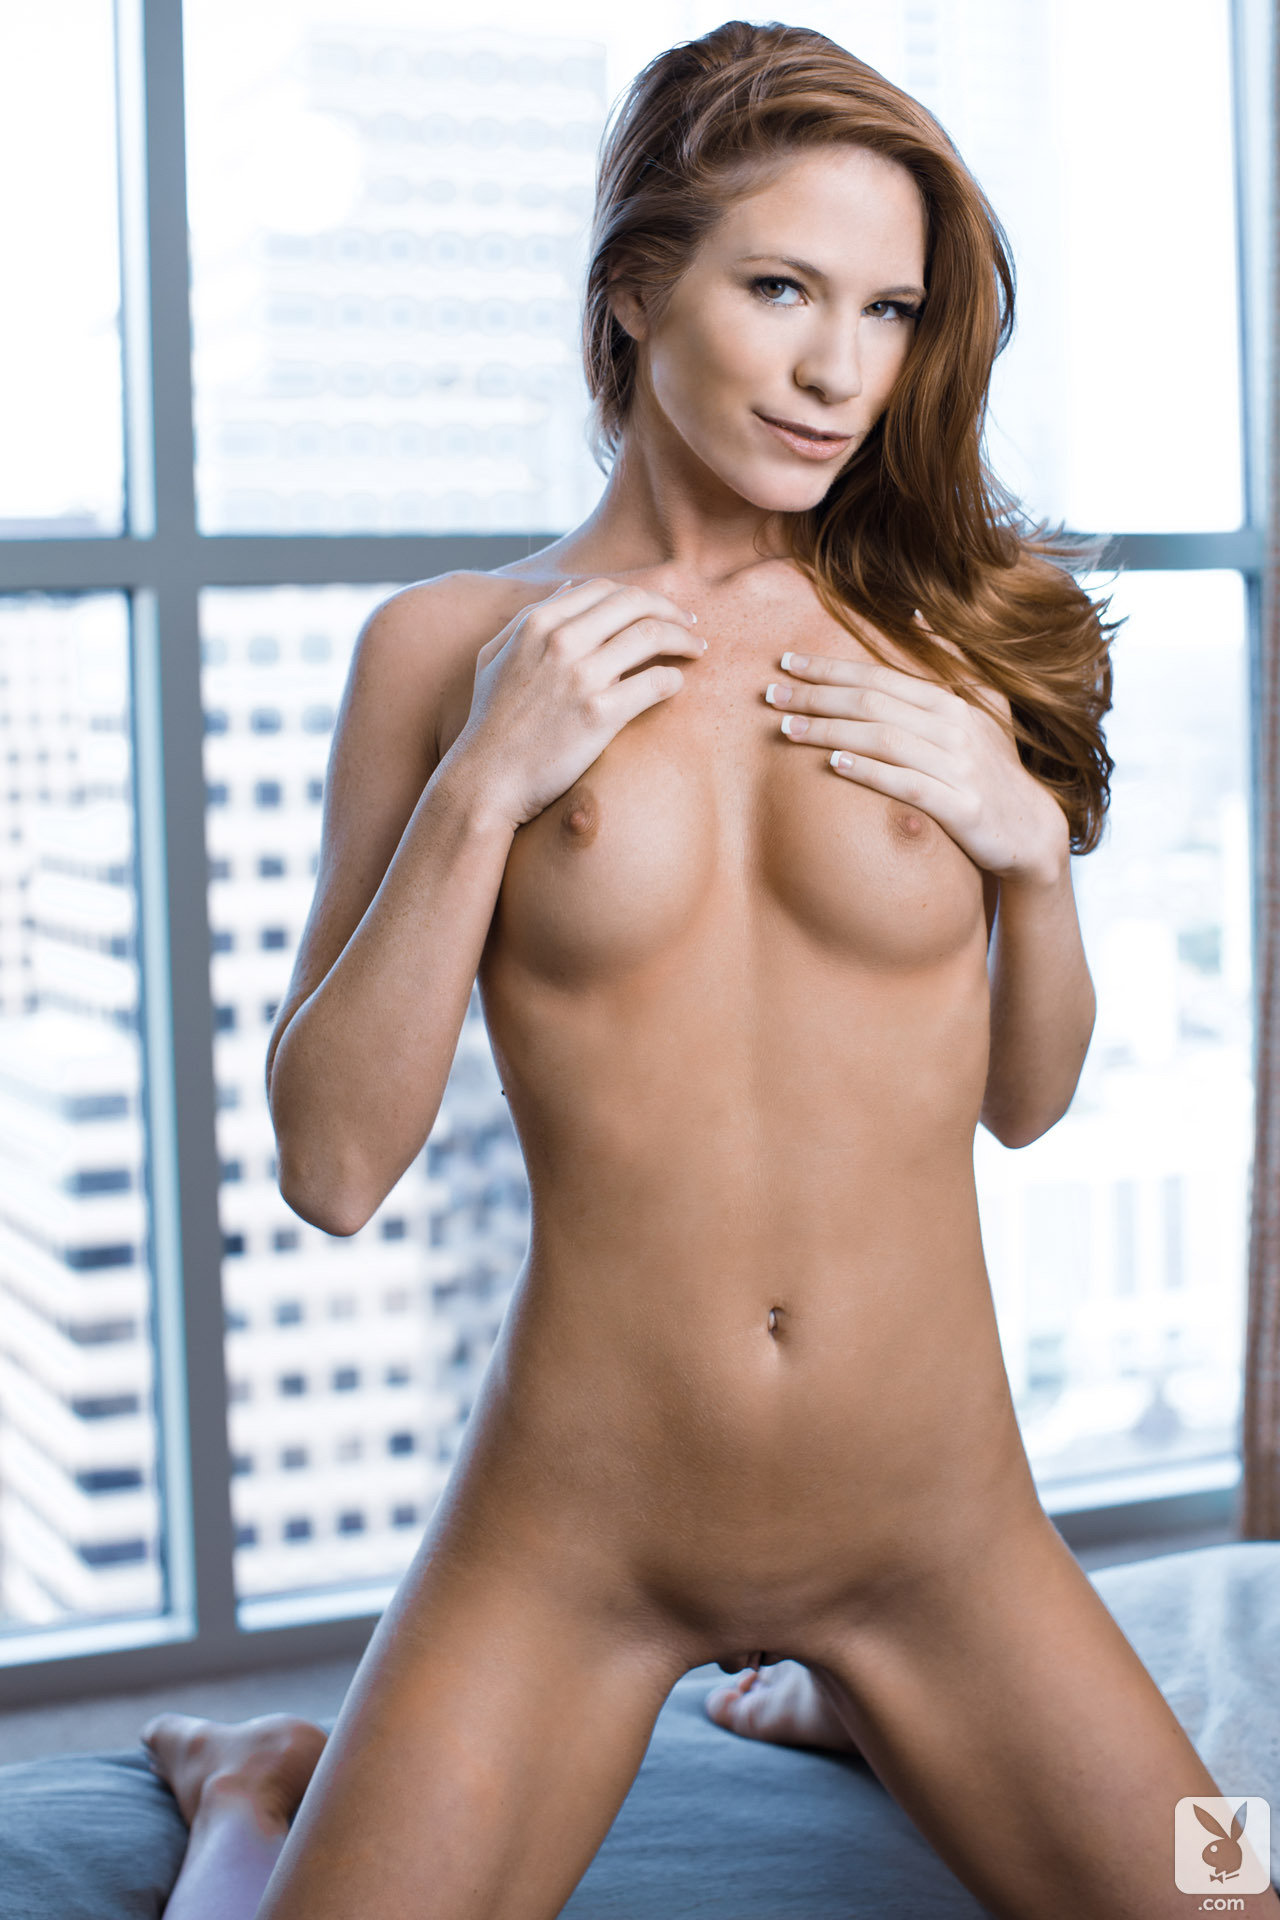 bree-morgan-nude-apartment-redhead-playboy-15